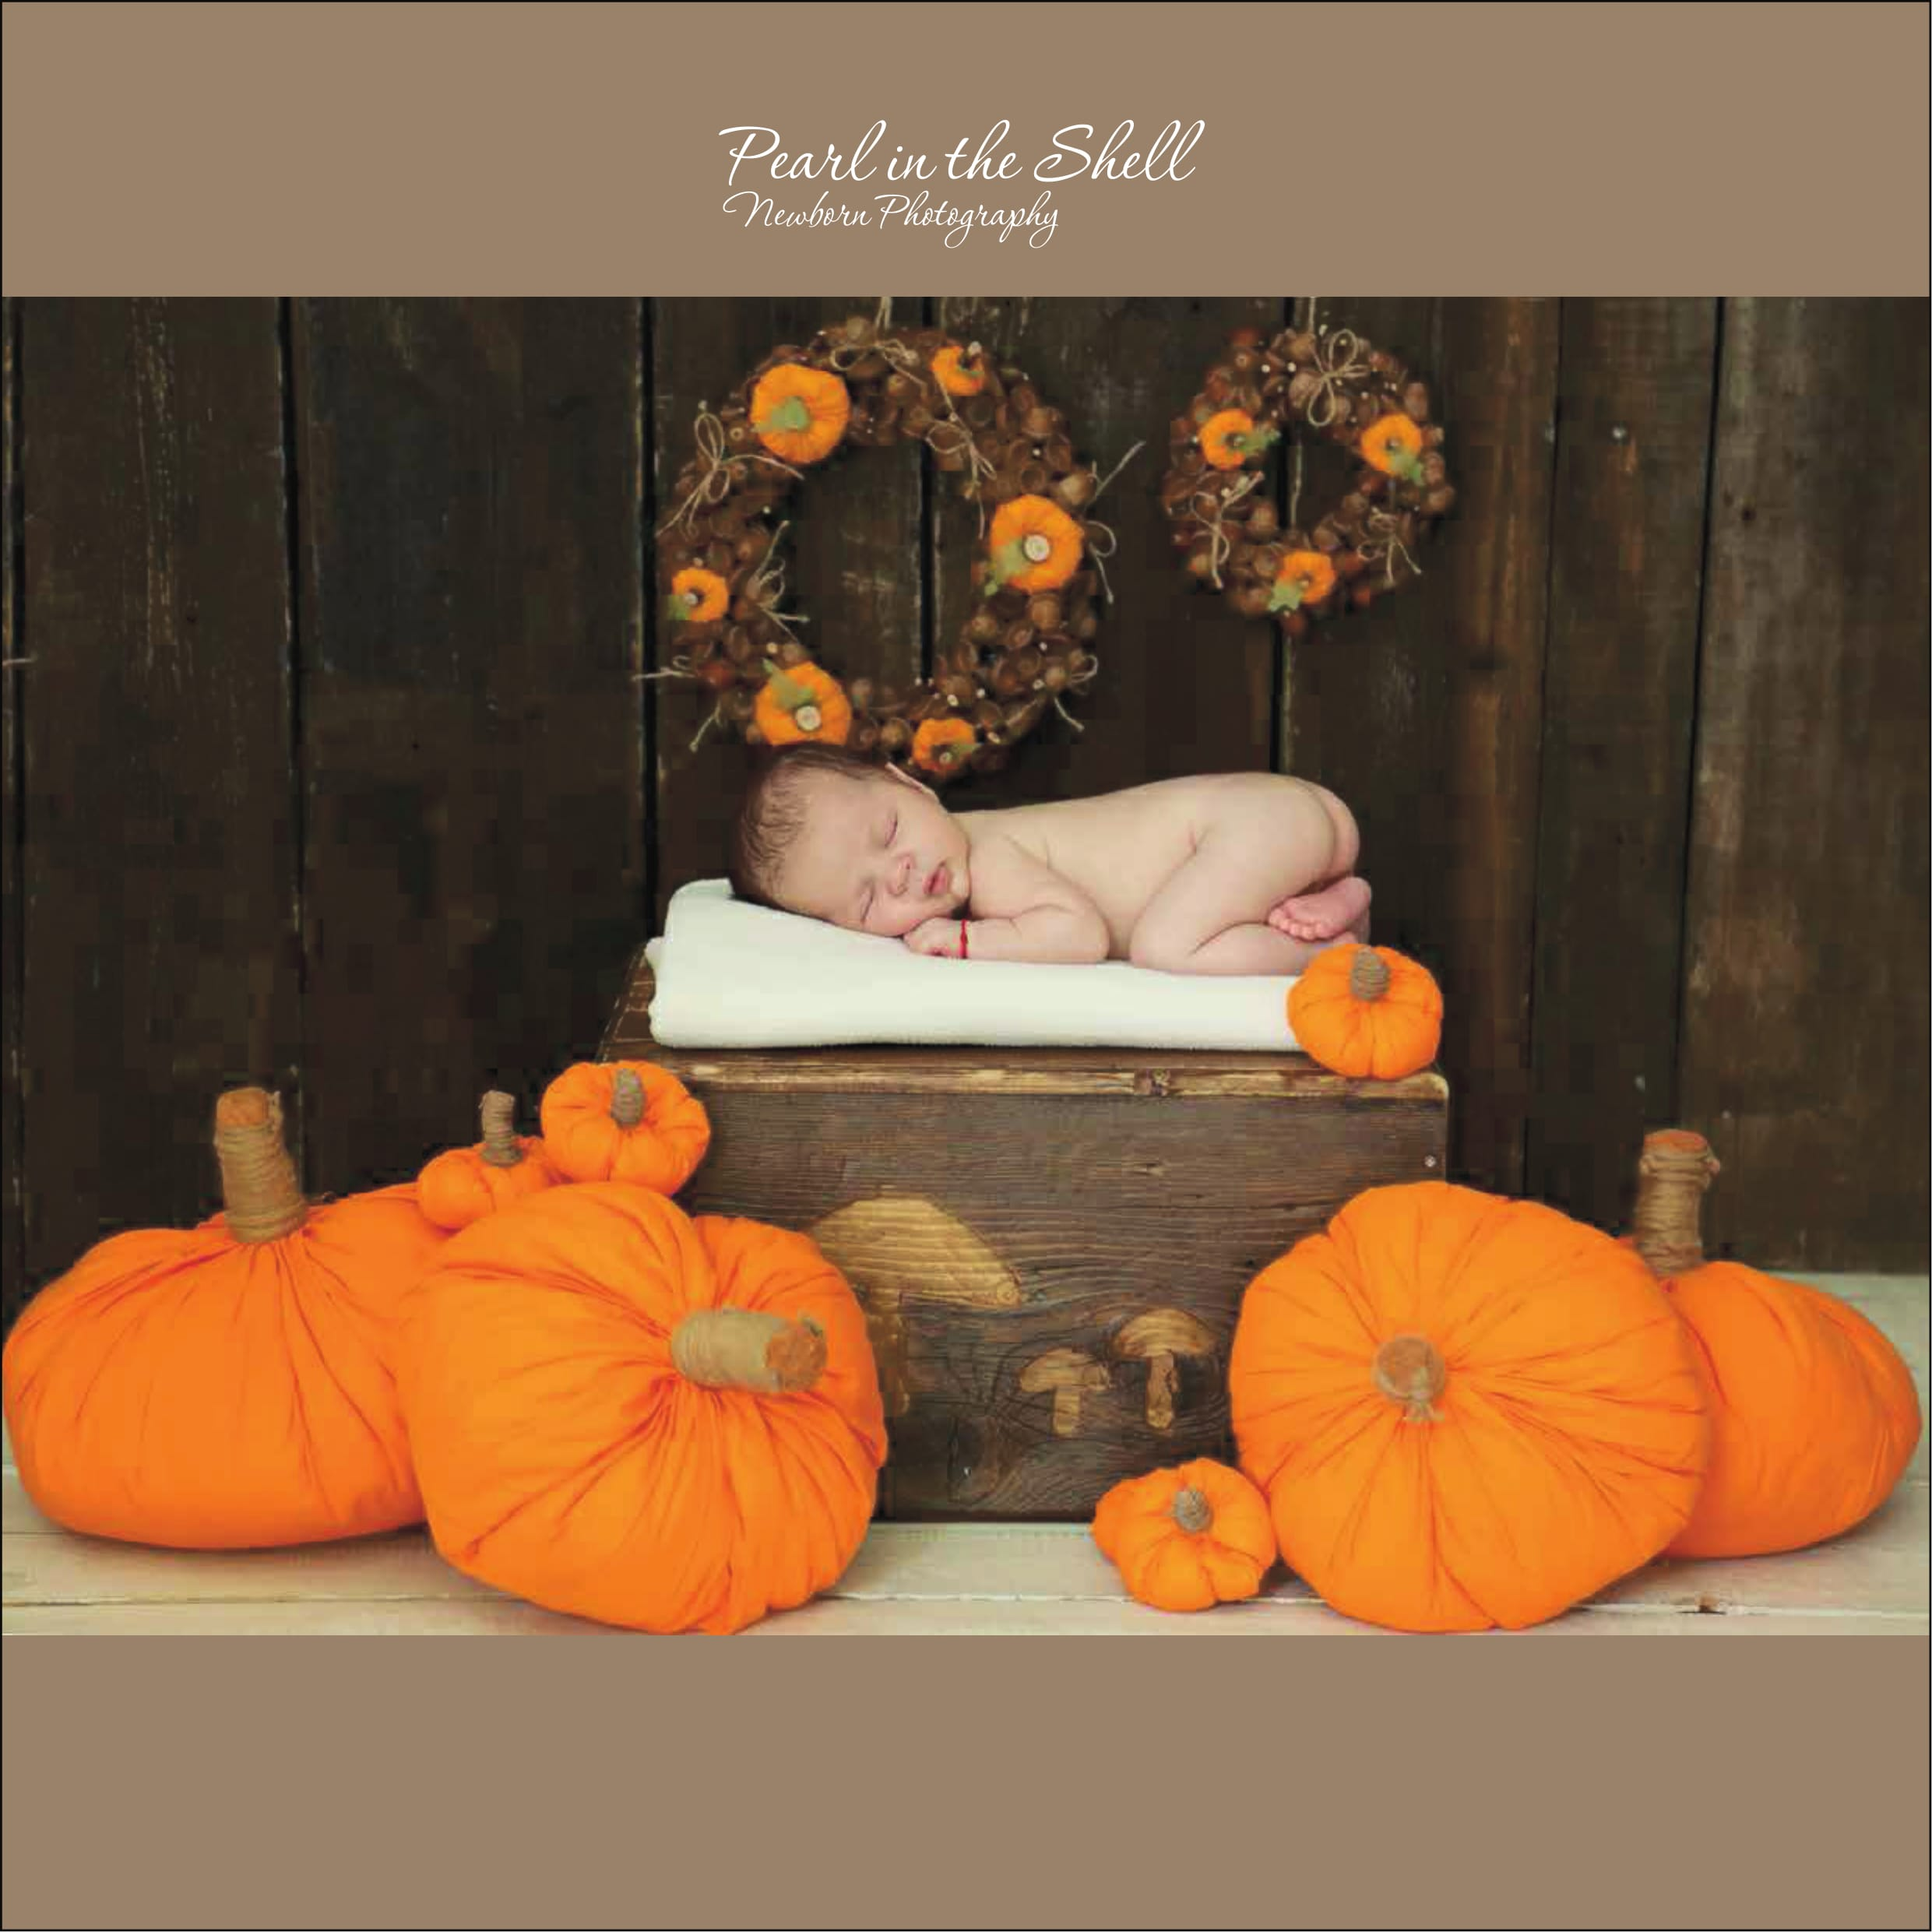 Pearl_in_the_Shell_Calendar_2018-22